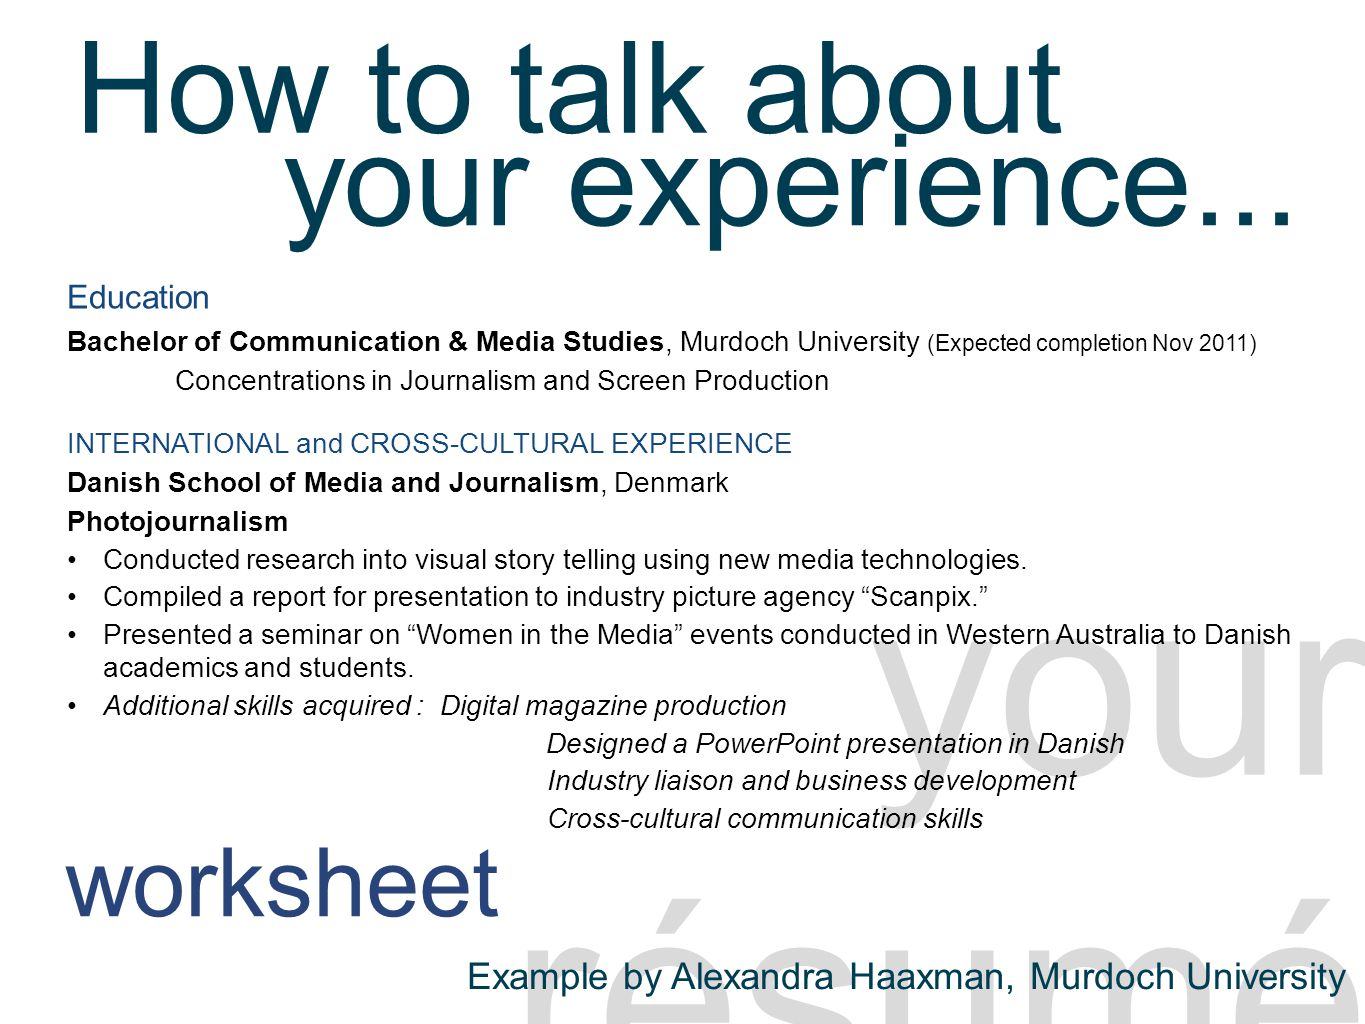 Portfolio - résumé your résumé Education Bachelor of Communication & Media Studies, Murdoch University (Expected completion Nov 2011) Concentrations in Journalism and Screen Production INTERNATIONAL and CROSS-CULTURAL EXPERIENCE Danish School of Media and Journalism, Denmark Photojournalism Conducted research into visual story telling using new media technologies.